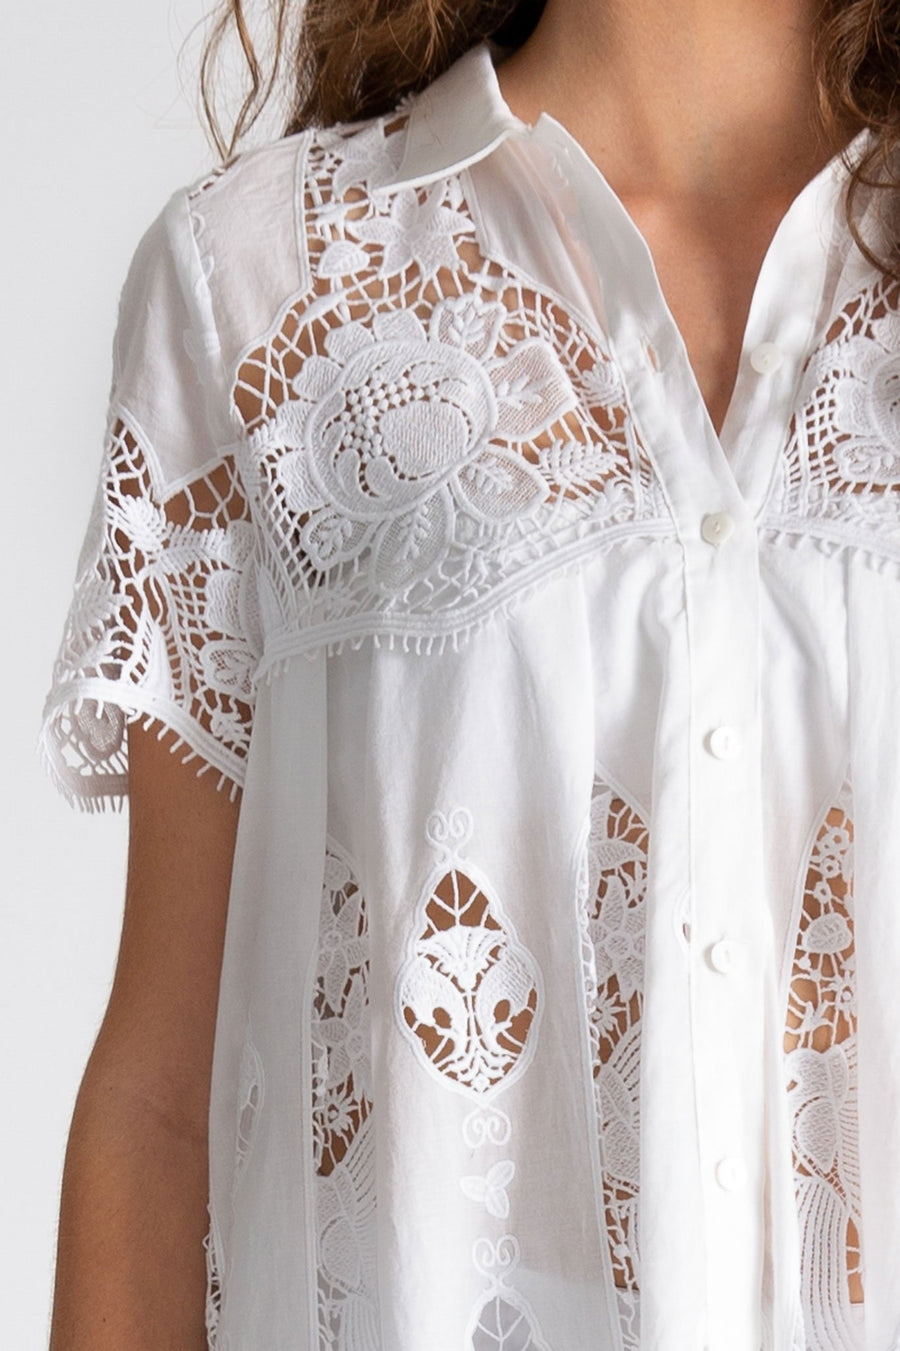 This is a detail photo of the white lace embroidery inspired by hibiscus flowers. The linen collar and button down front are visible here on the babydoll coverup dress.